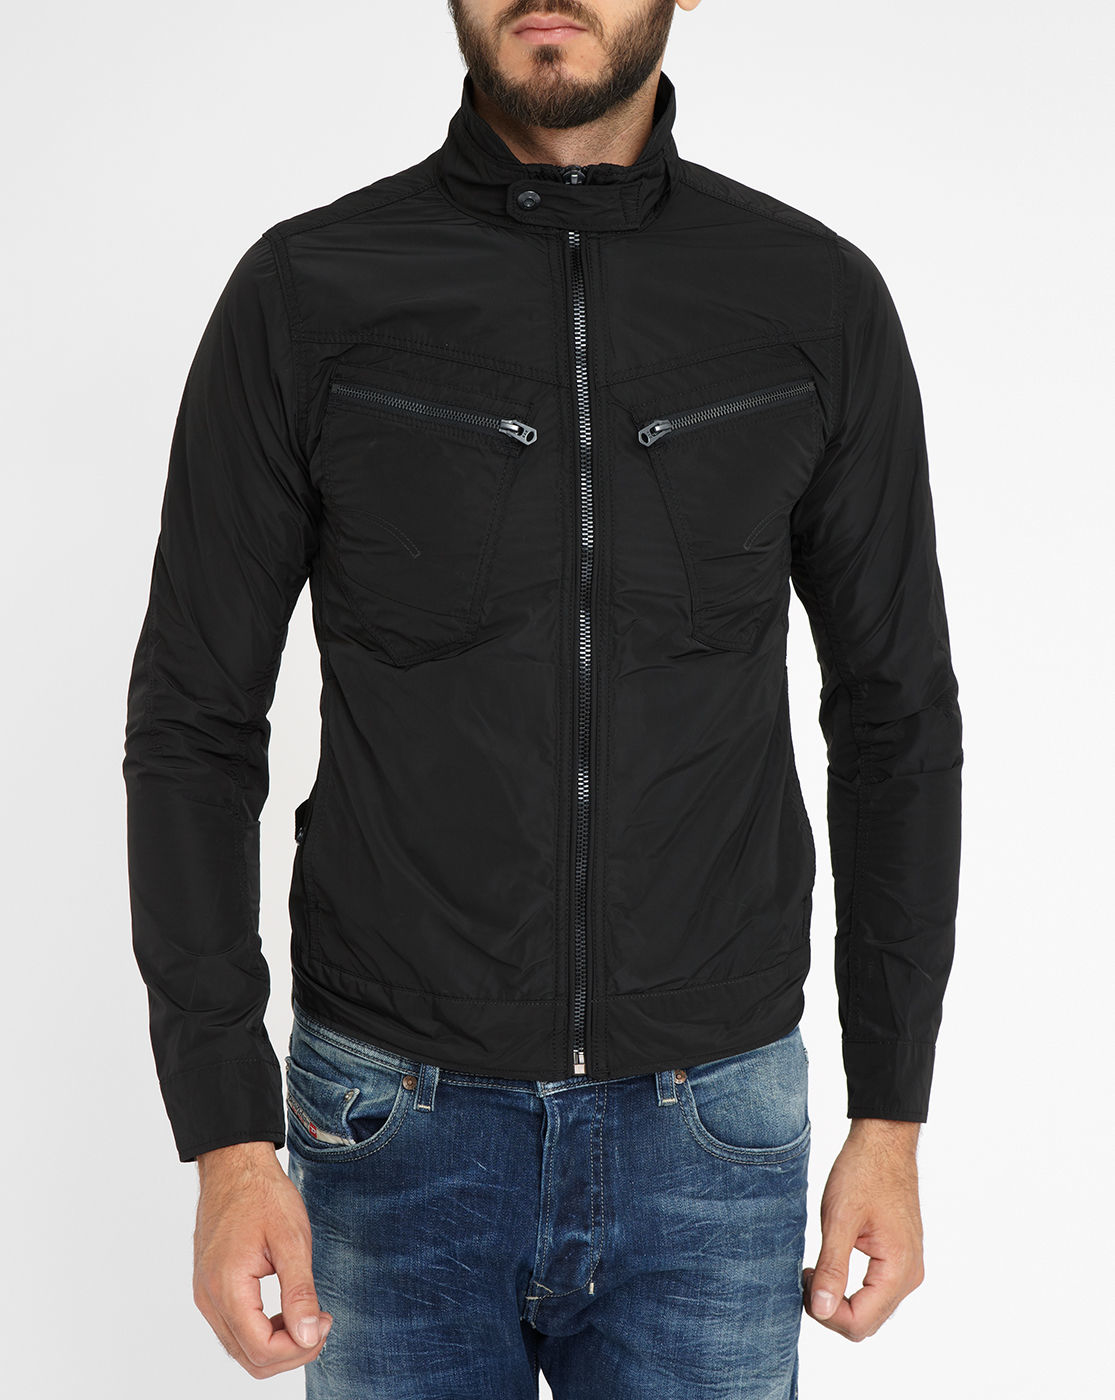 G-star raw Black Arc Zip 3d Slim-fit Jacket in Black for ...